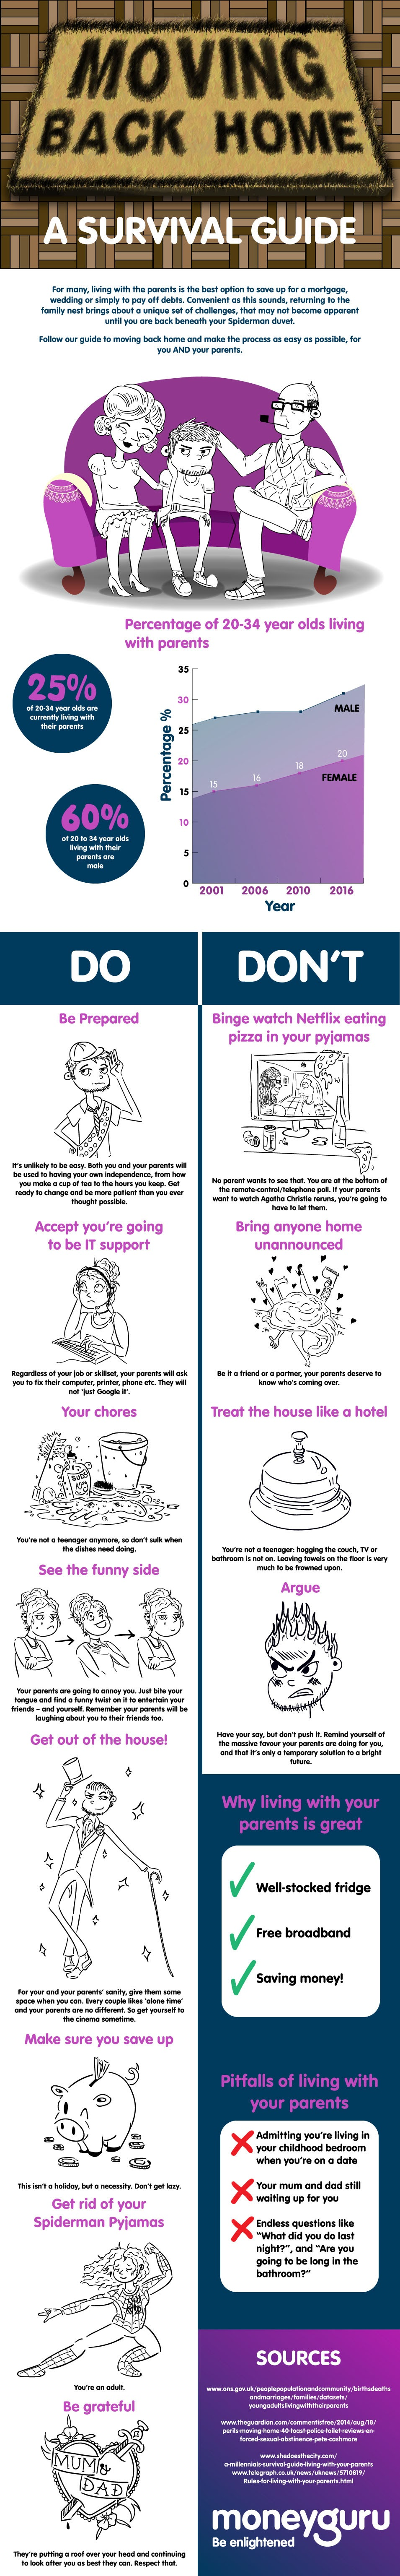 Moving Back Home: A Survival Guide #infographic